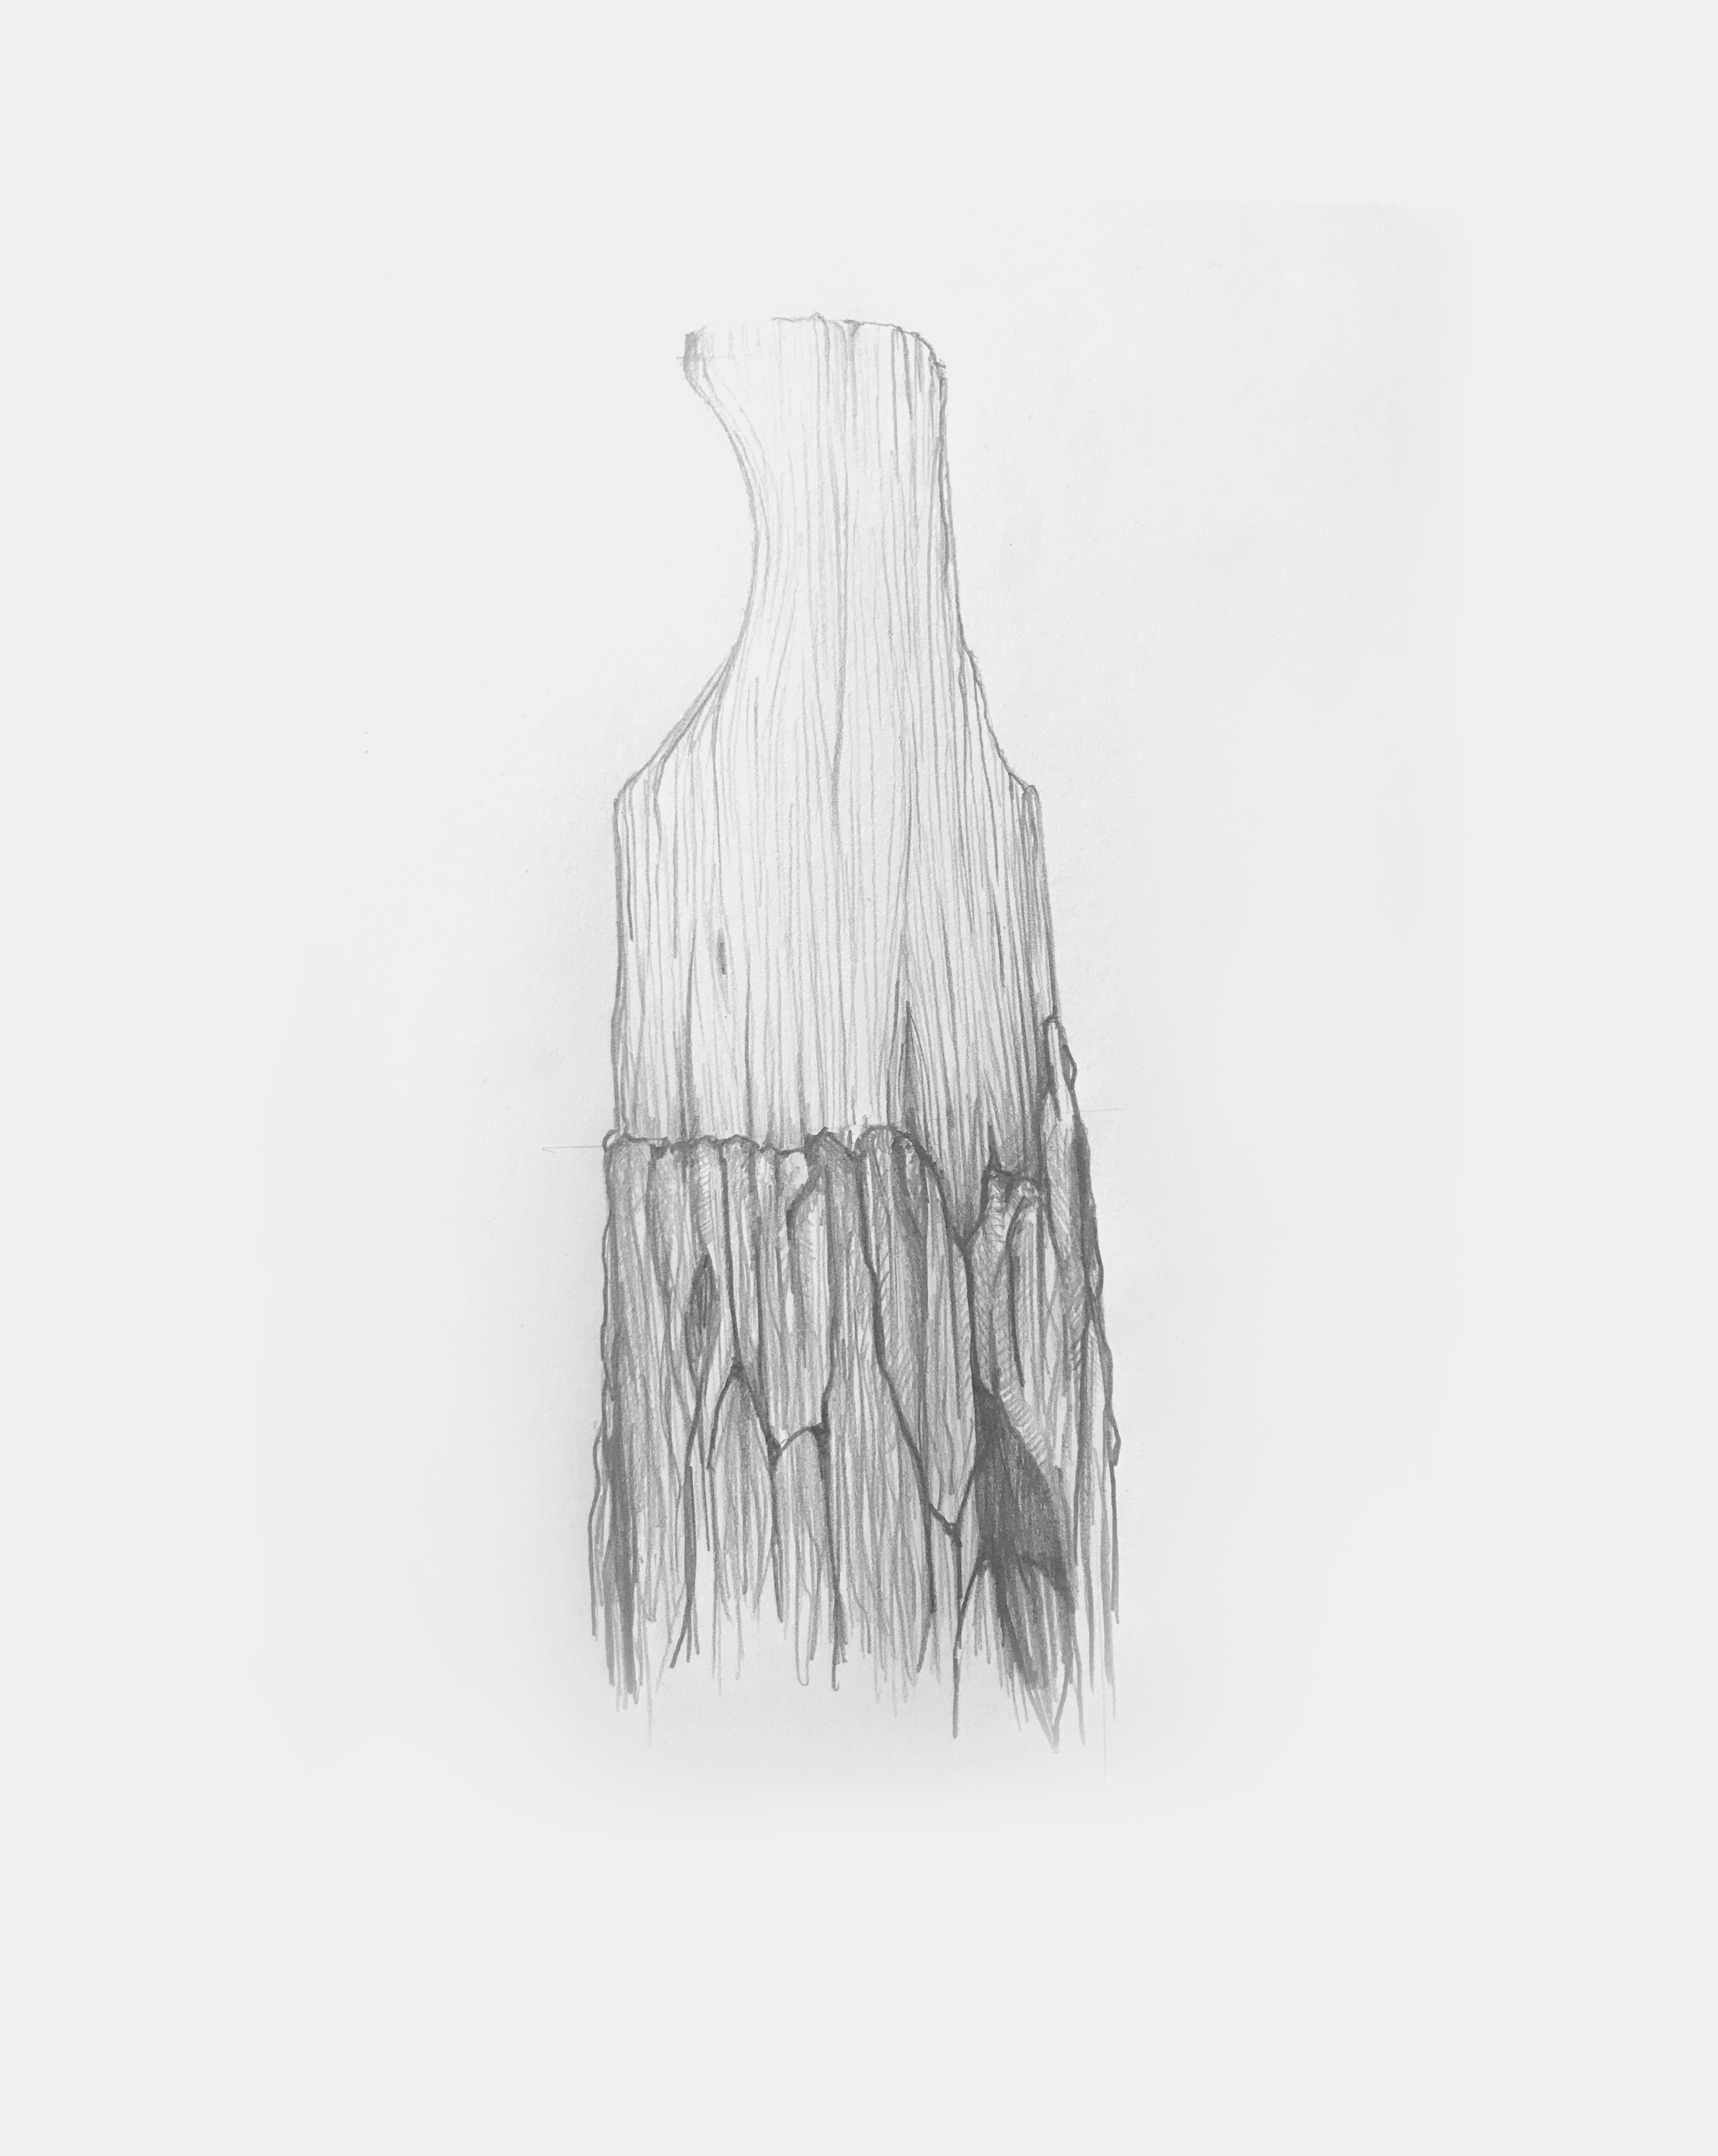 mathieu delacroix_tasso_vases_drawing